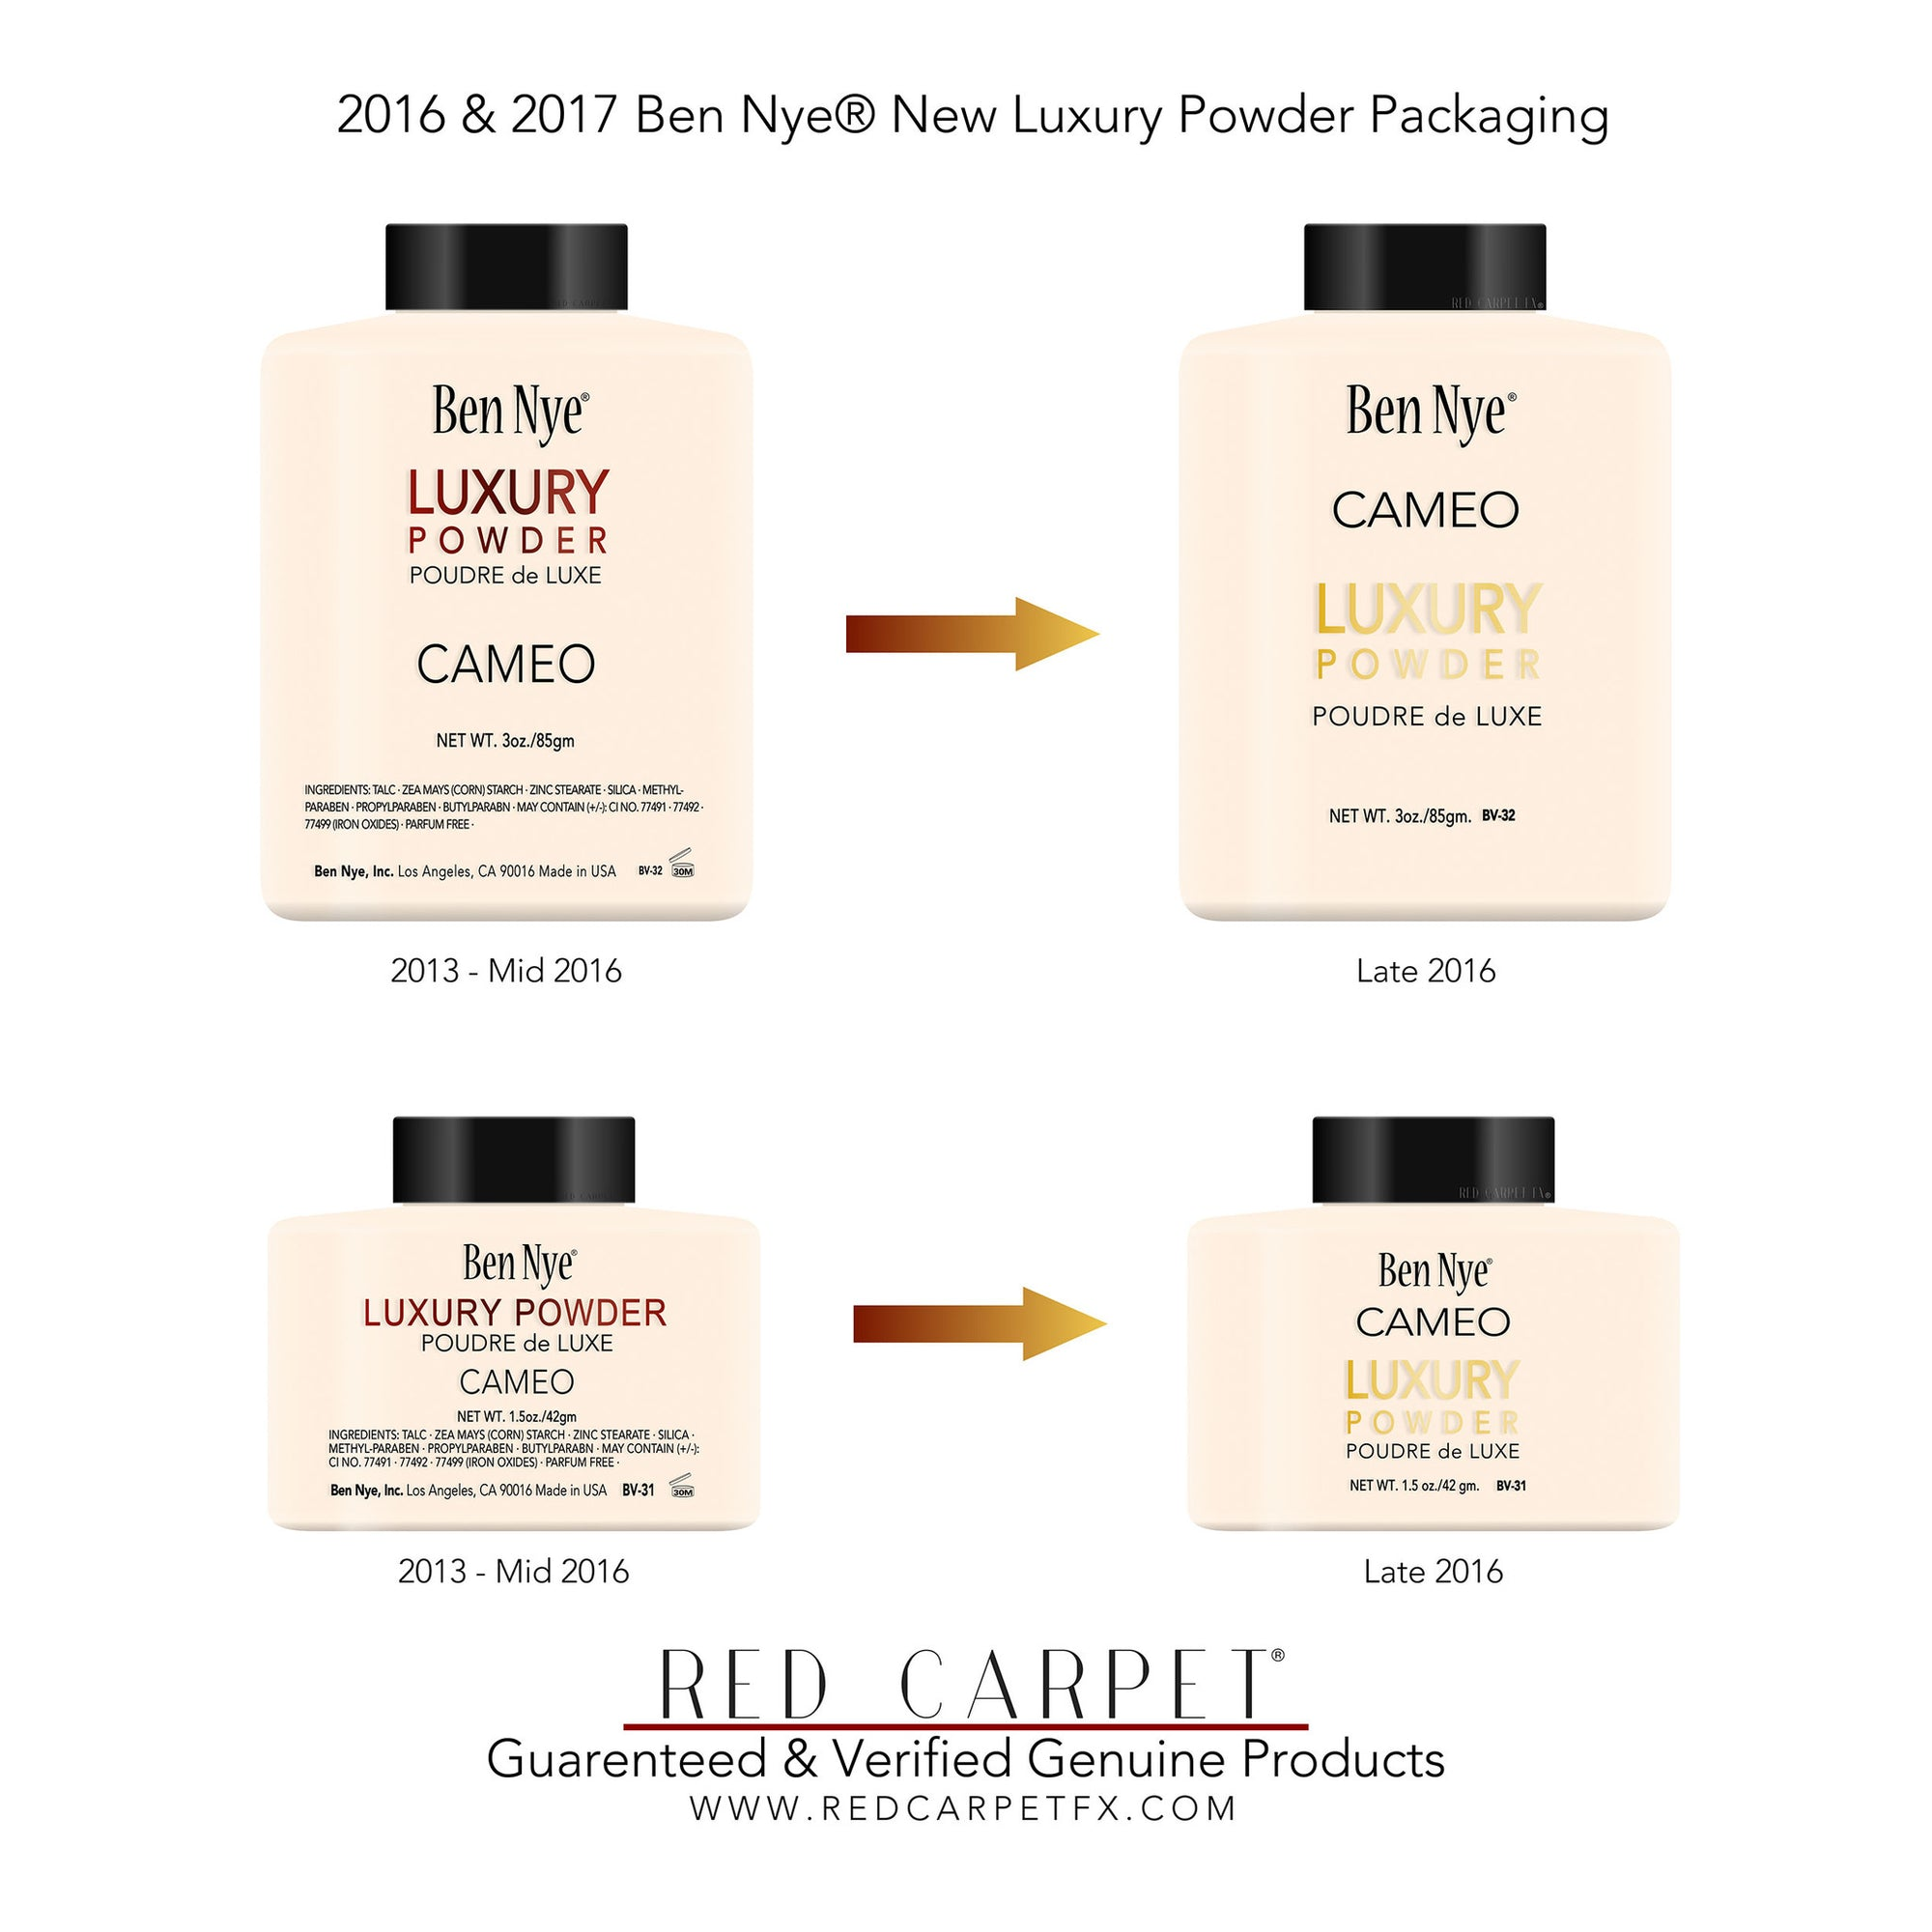 Introducing the New Style Ben Nye Luxury Powder Branding